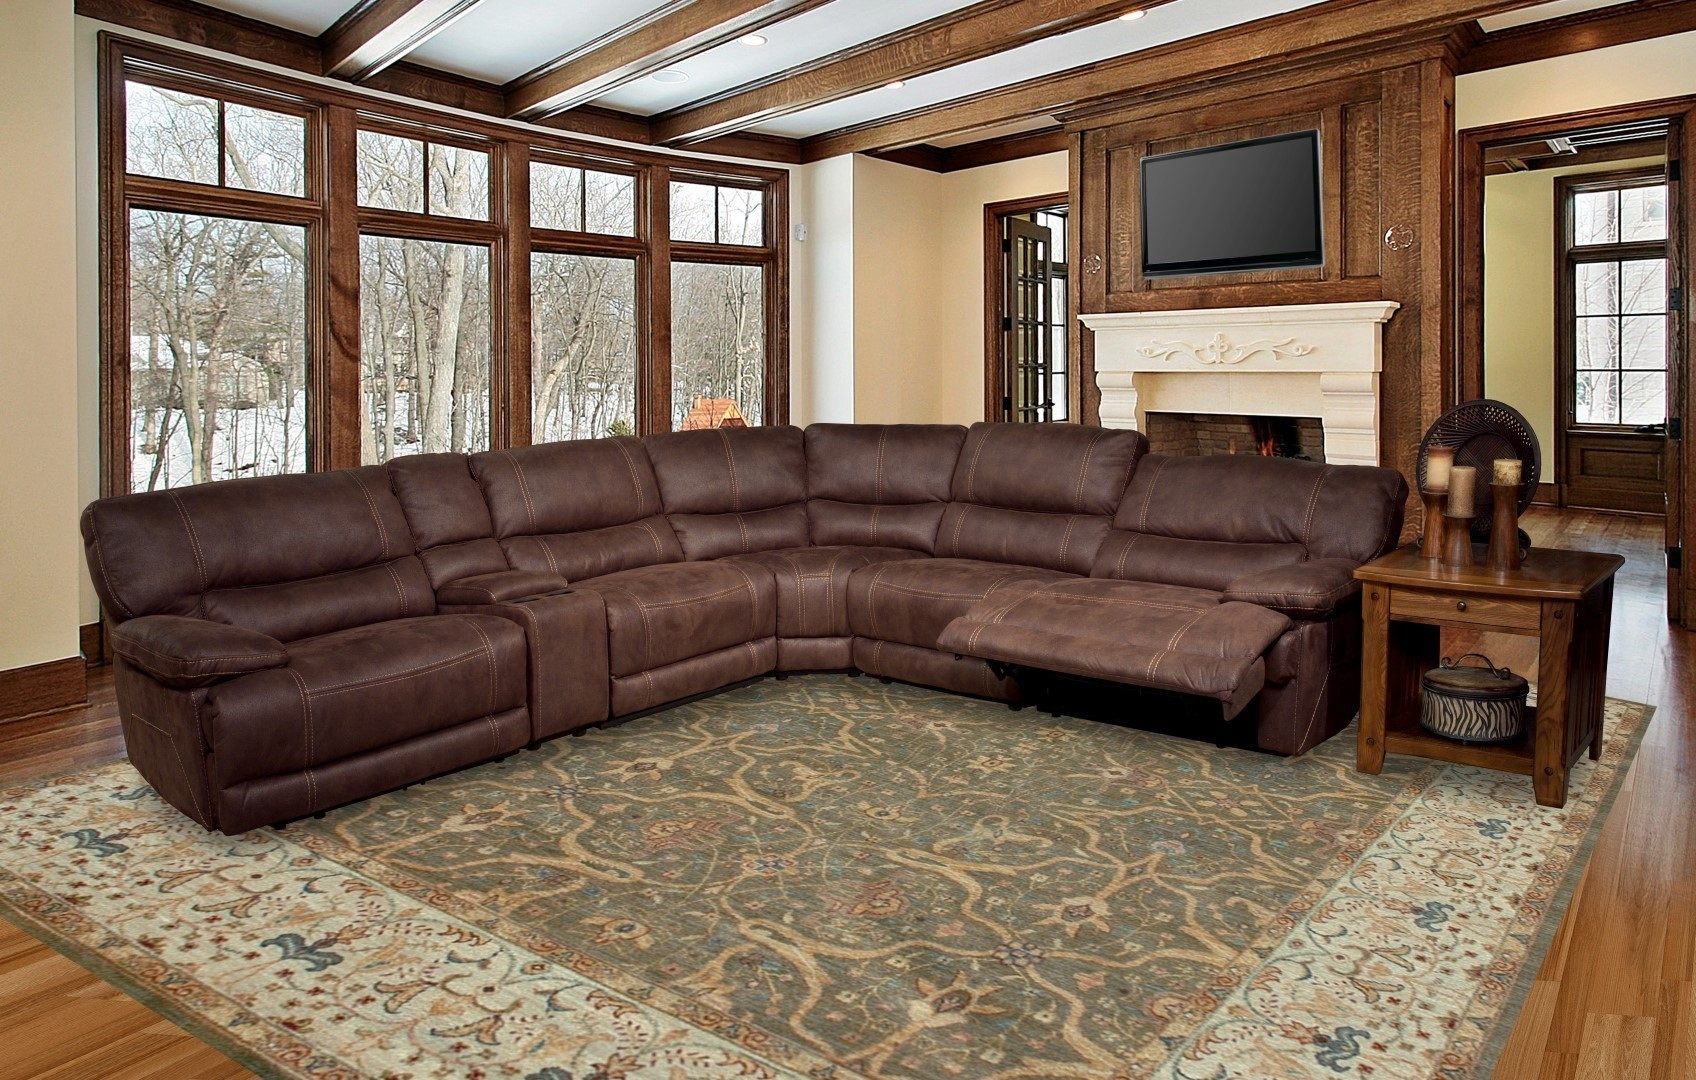 Best ideas about Sofa City Springfield Mo . Save or Pin 10 Top Joplin Mo Sectional Sofas Now.